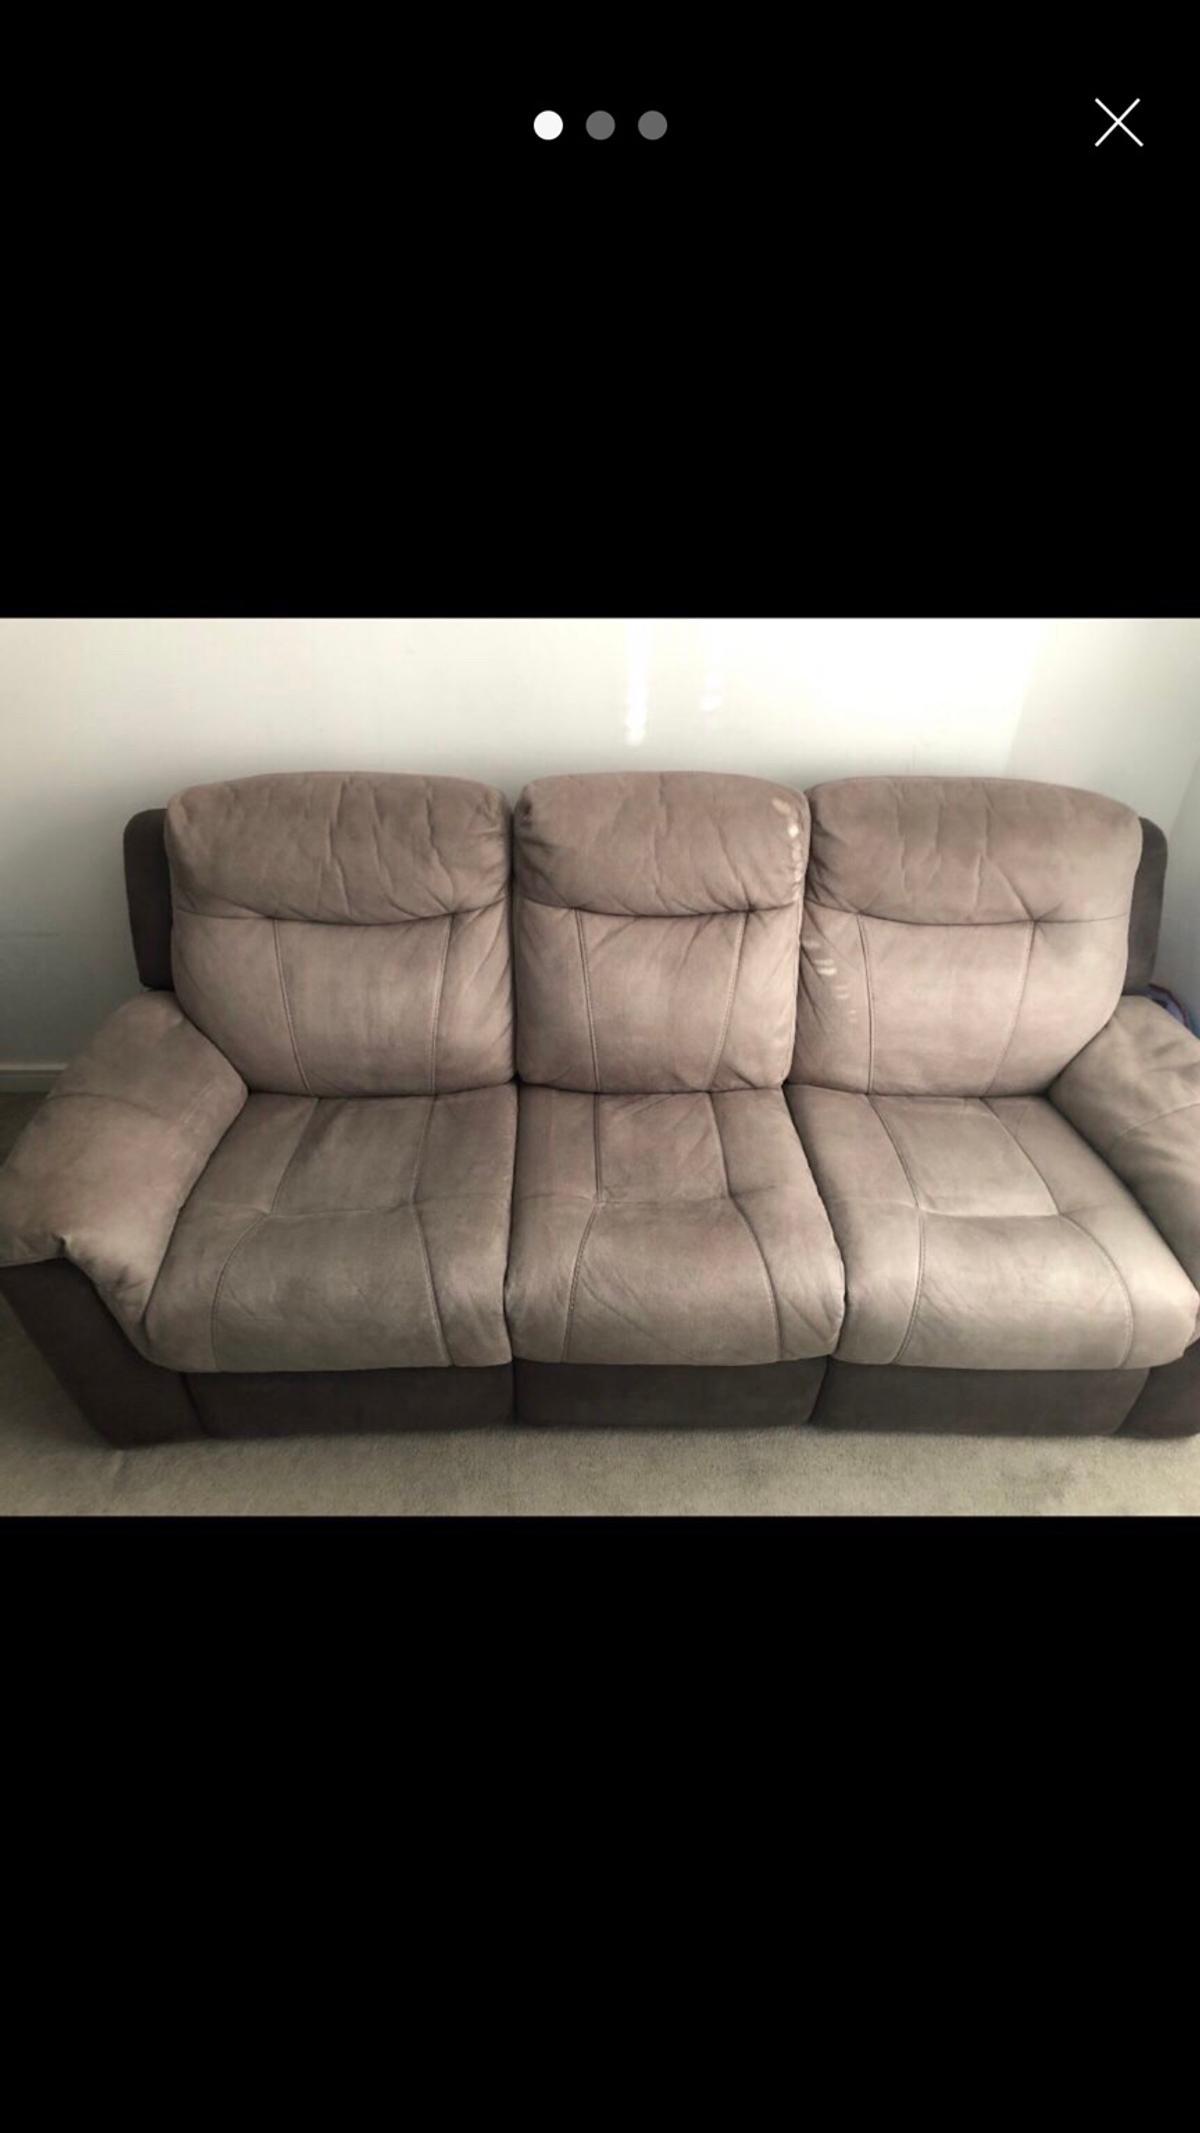 3 seat recliner sofa and 2 seat cuddle chair